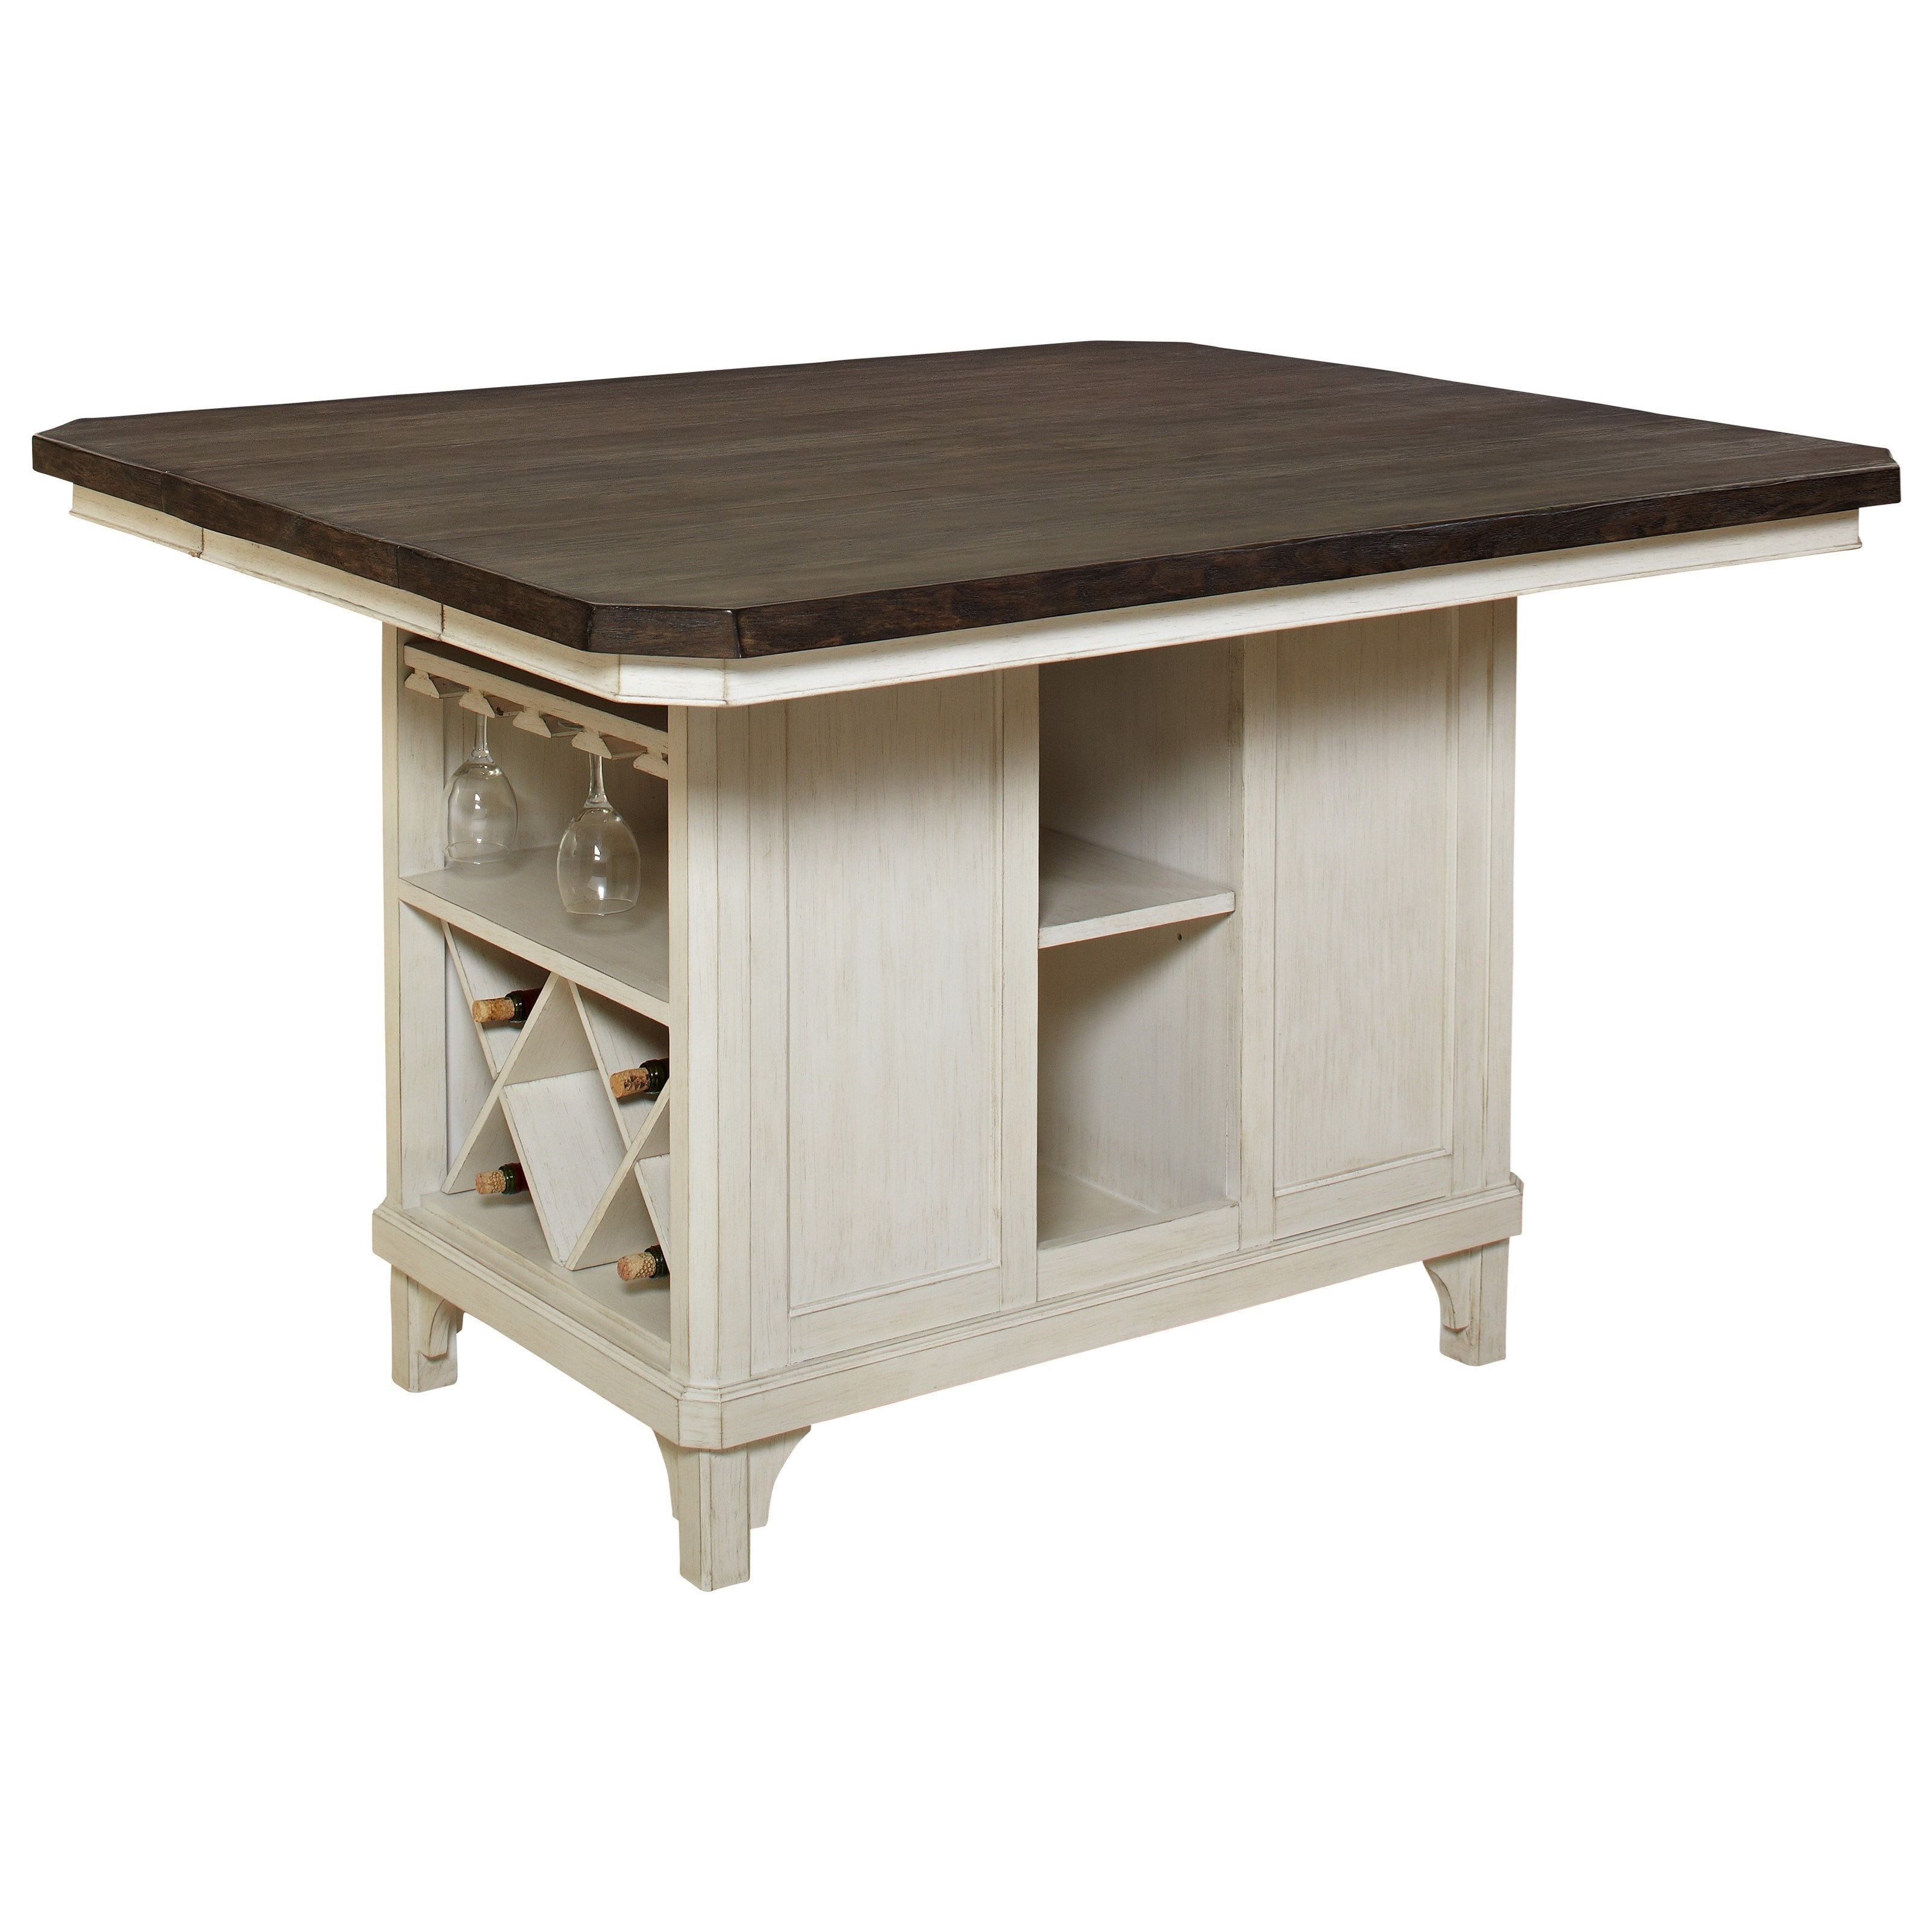 Avalon Furniture Mystic Cay Kitchen Island With 18 Leaf And Bottle Storage Van Hill Furniture Kitchen Islands